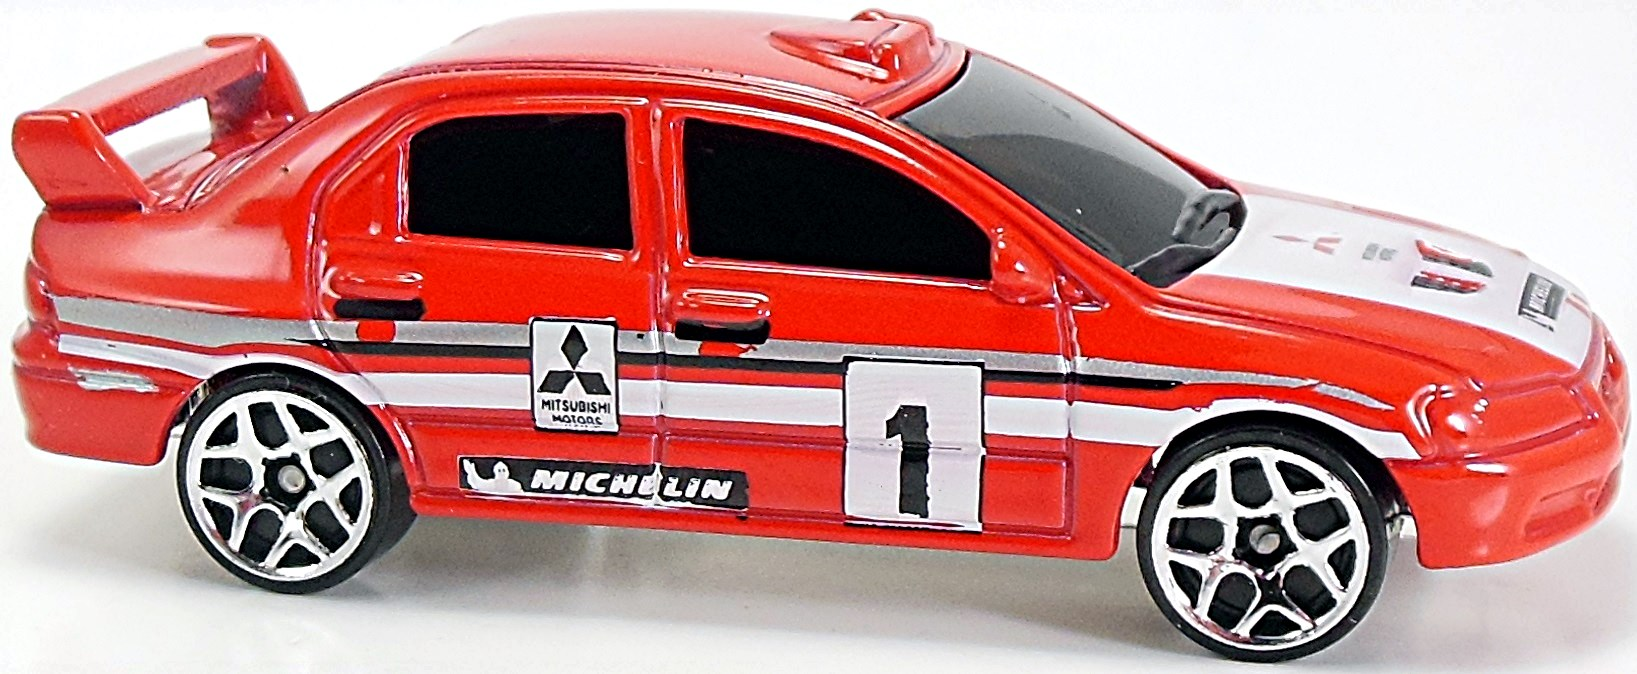 Evo 2017 Logo >> Mitsubishi EVO 7 – 74mm – 2005 | Hot Wheels Newsletter